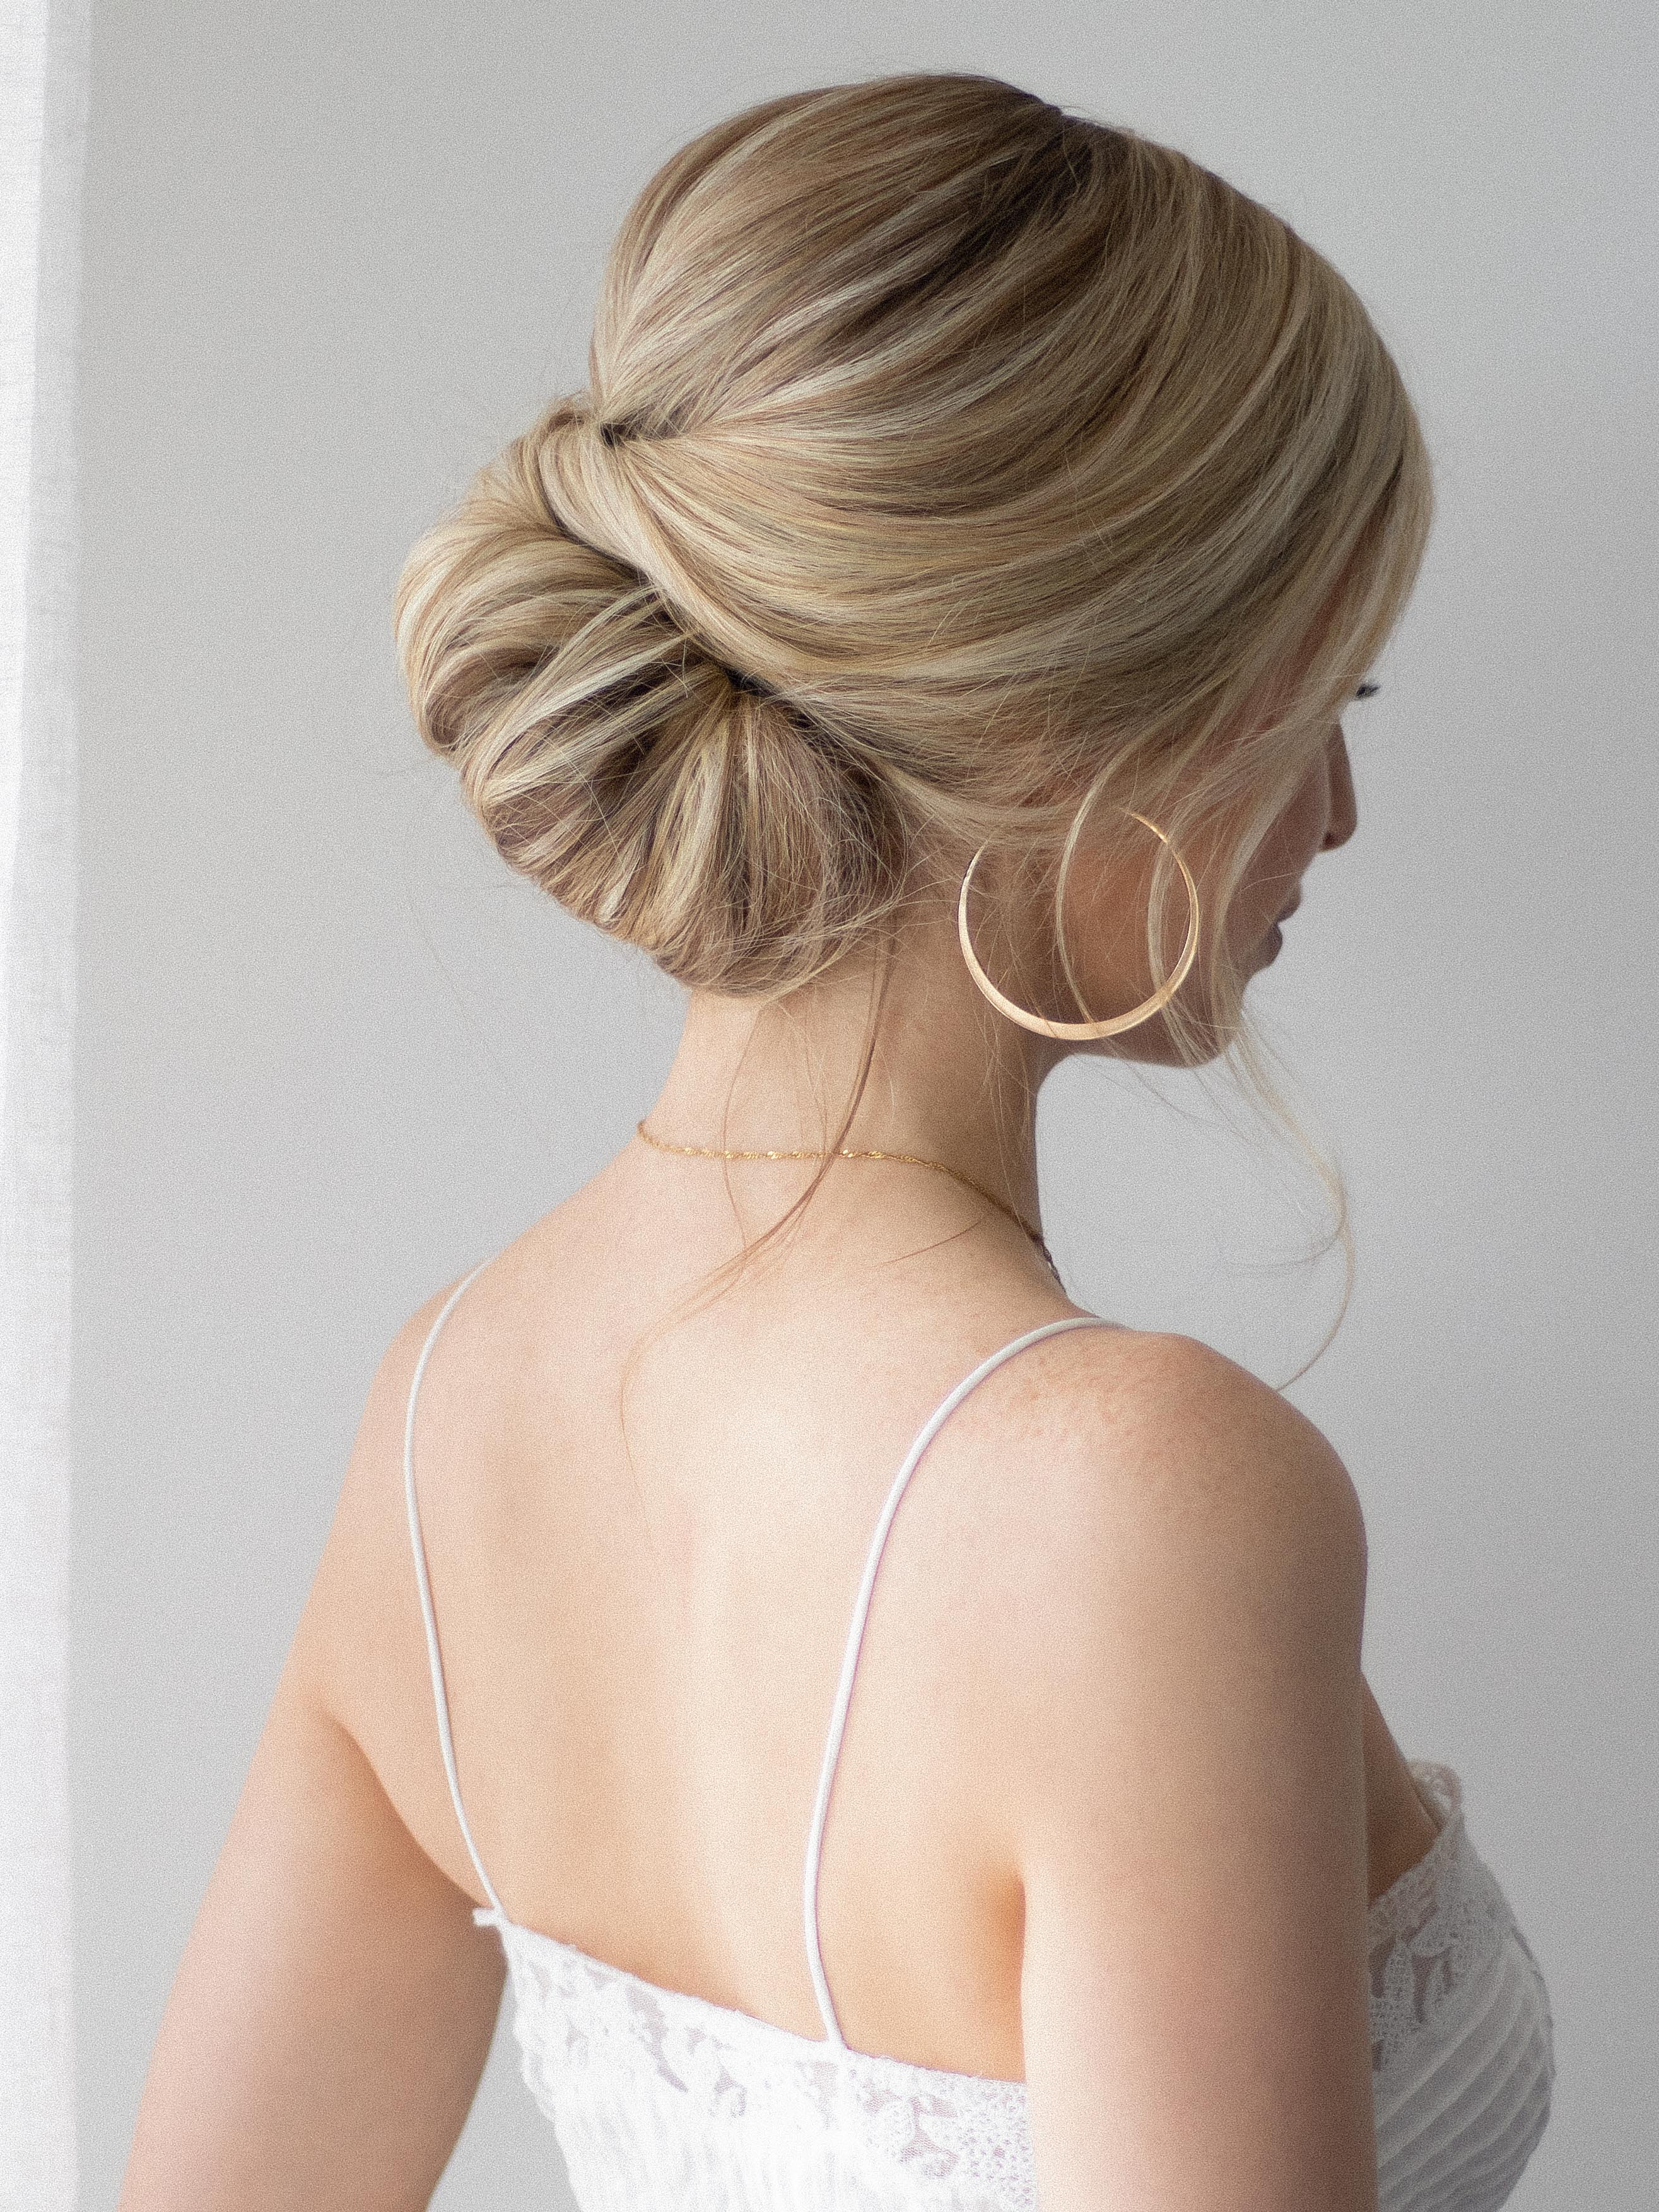 EASY UPDO FOR SHORT HAIR, THE PERFECT WEDDING HAIRSTYLE www.alexgaboury.com